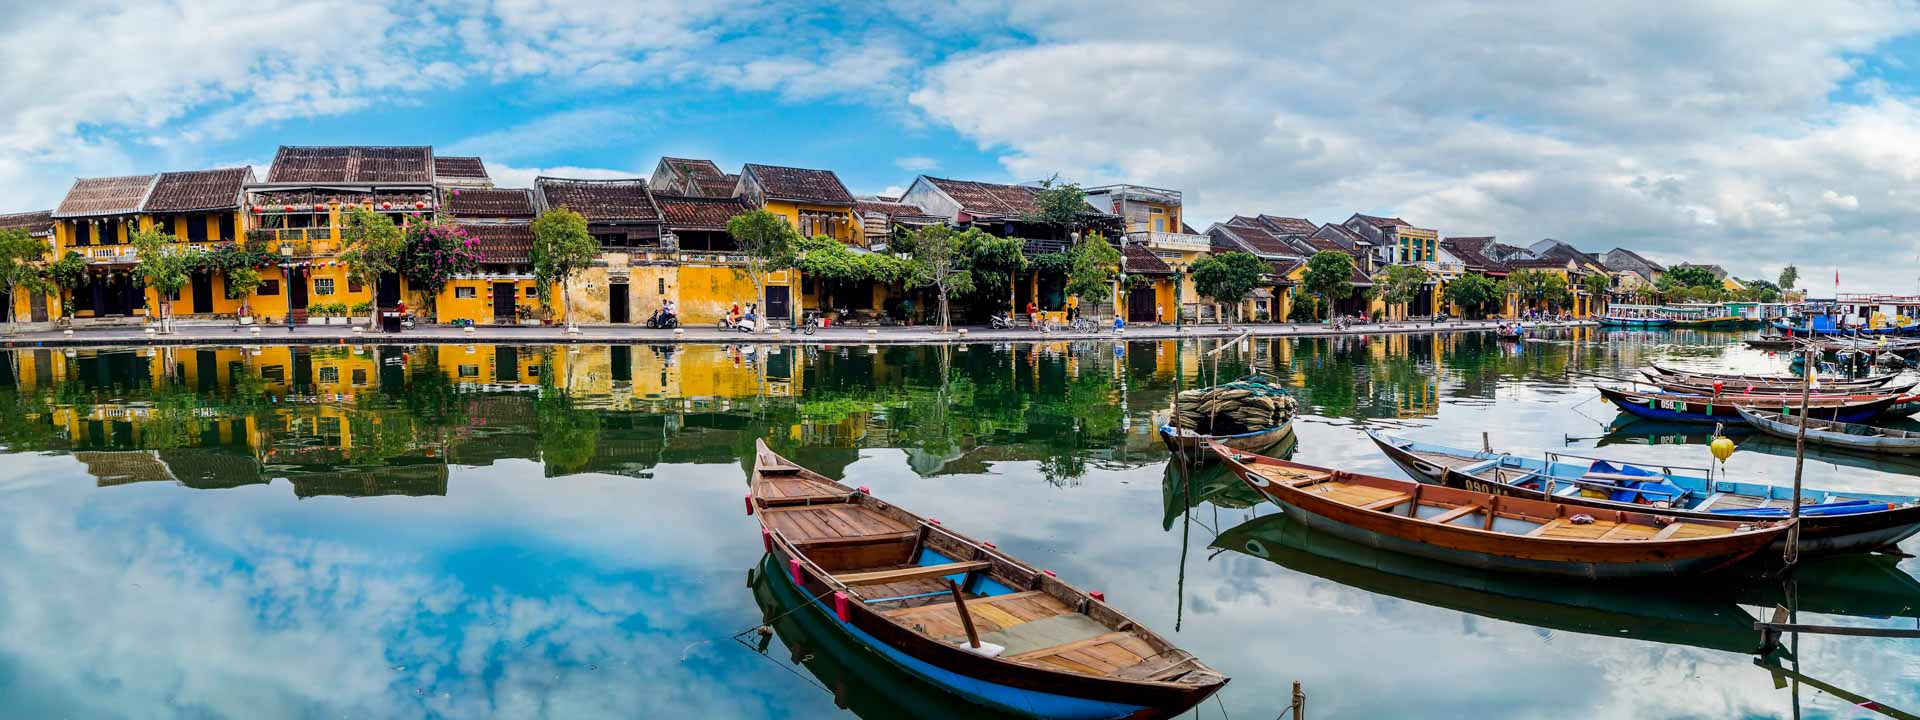 Hoi An Ancient Town – Free & Easy 4 days